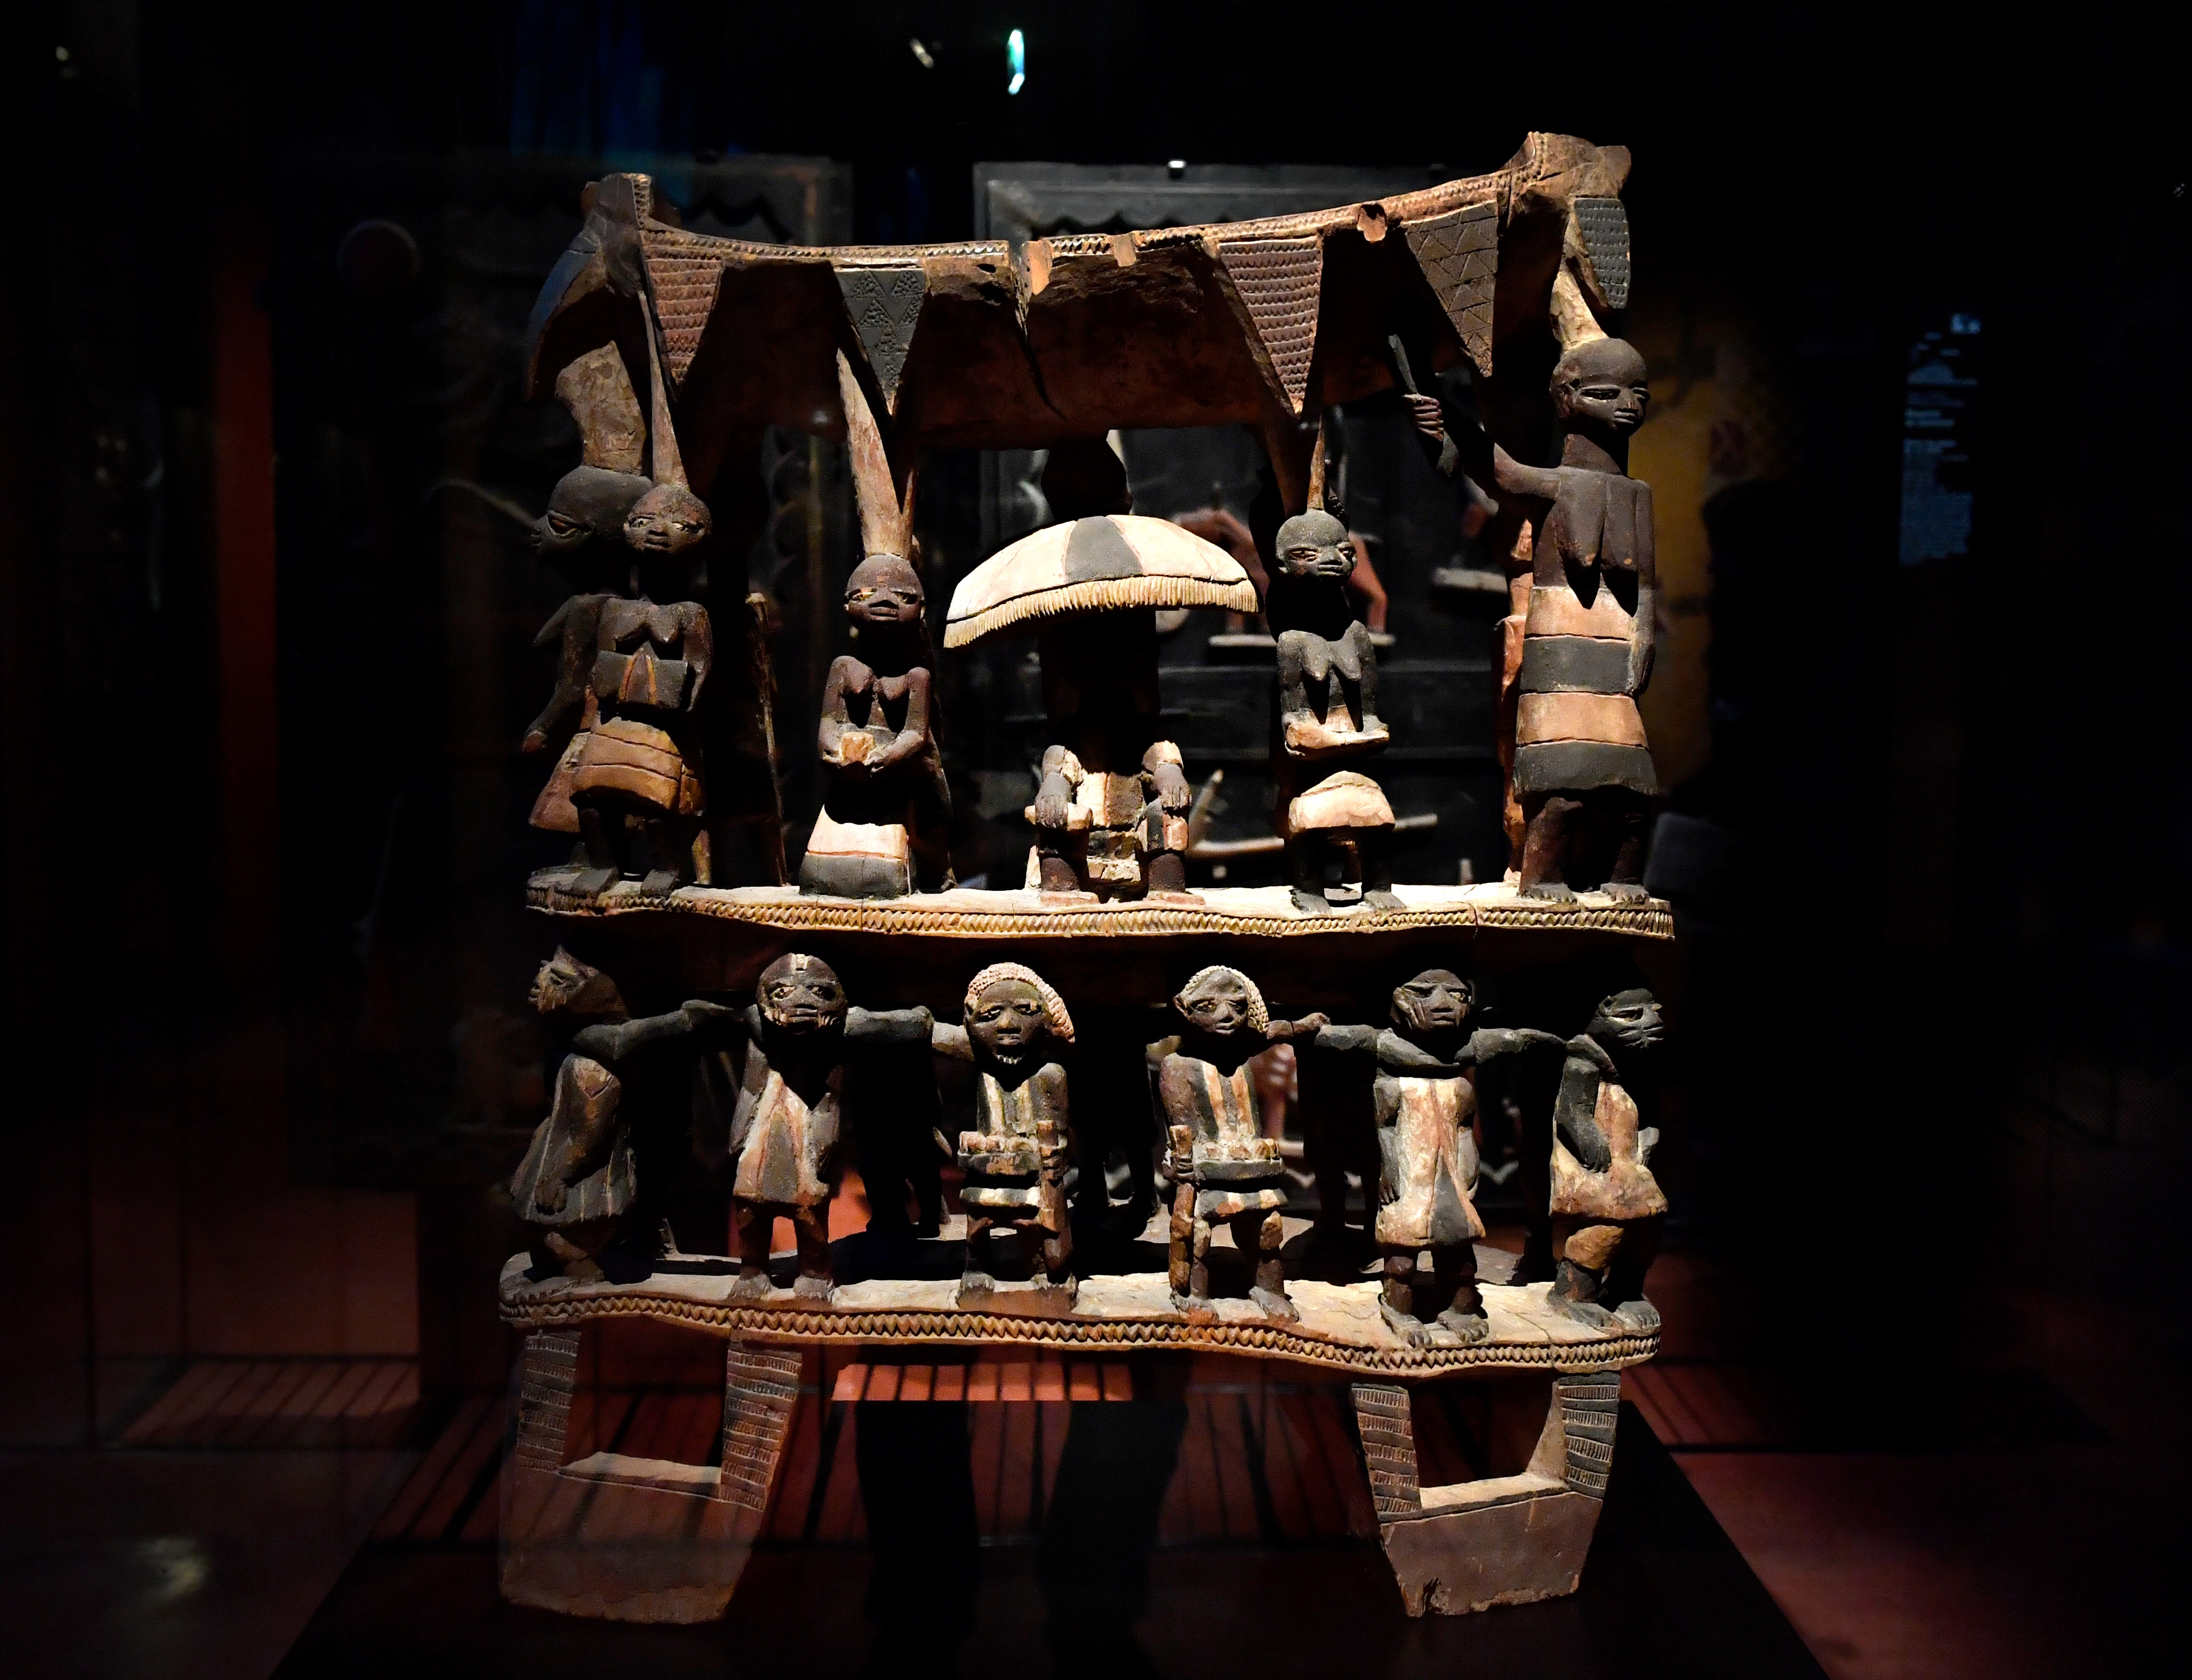 Royal Seat of the Kingdom of Dahomey from the early 19th century is pictured, on June 18, 2018 at the Quai Branly Museum-Jacques Chirac in Paris.